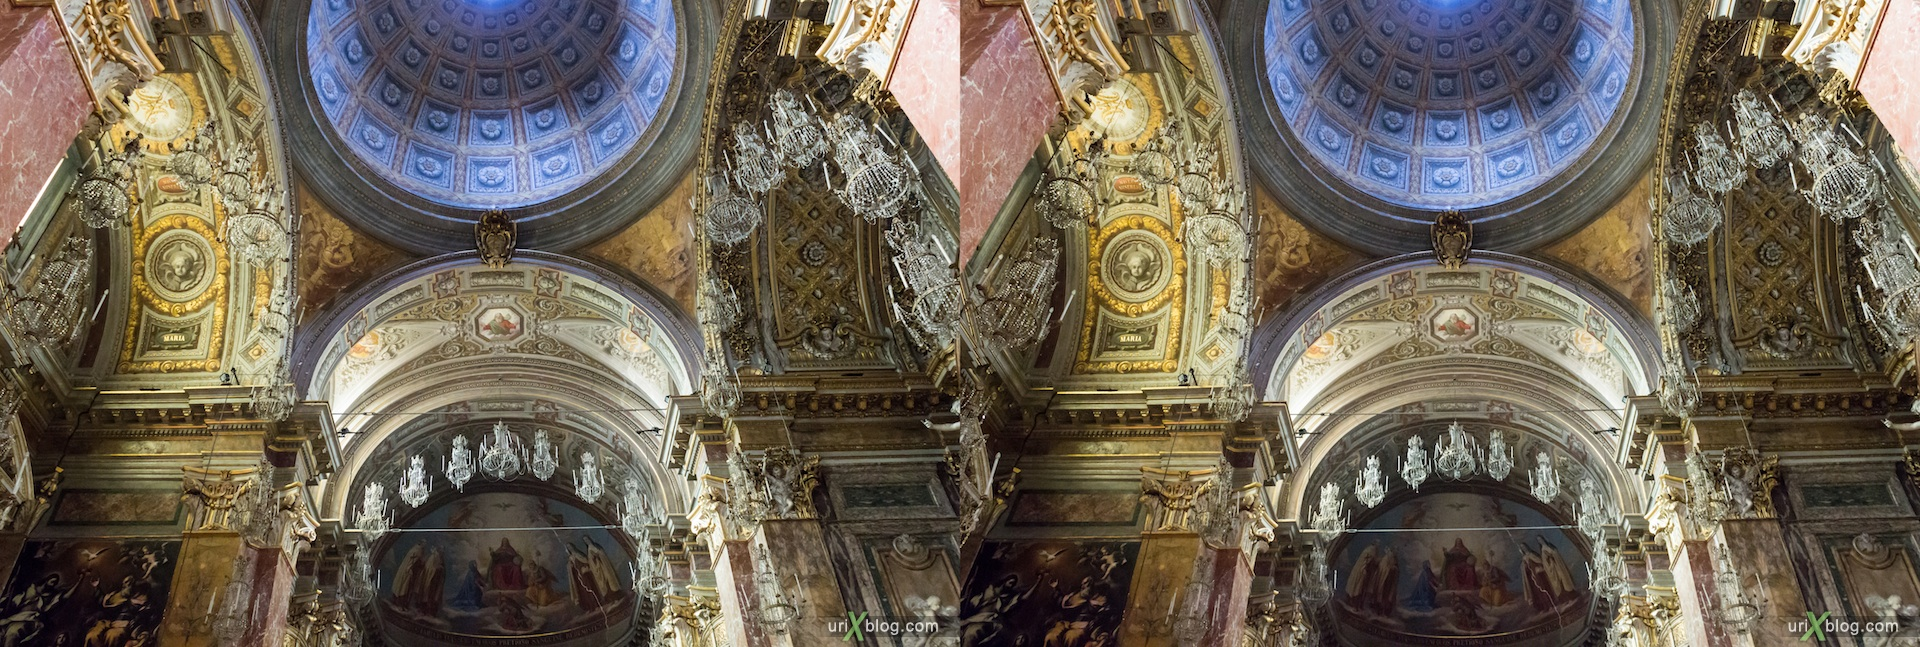 2012, Sant'Egidio church, Rome, Italy, cathedral, monastery, Christianity, Catholicism, 3D, stereo pair, cross-eyed, crossview, cross view stereo pair